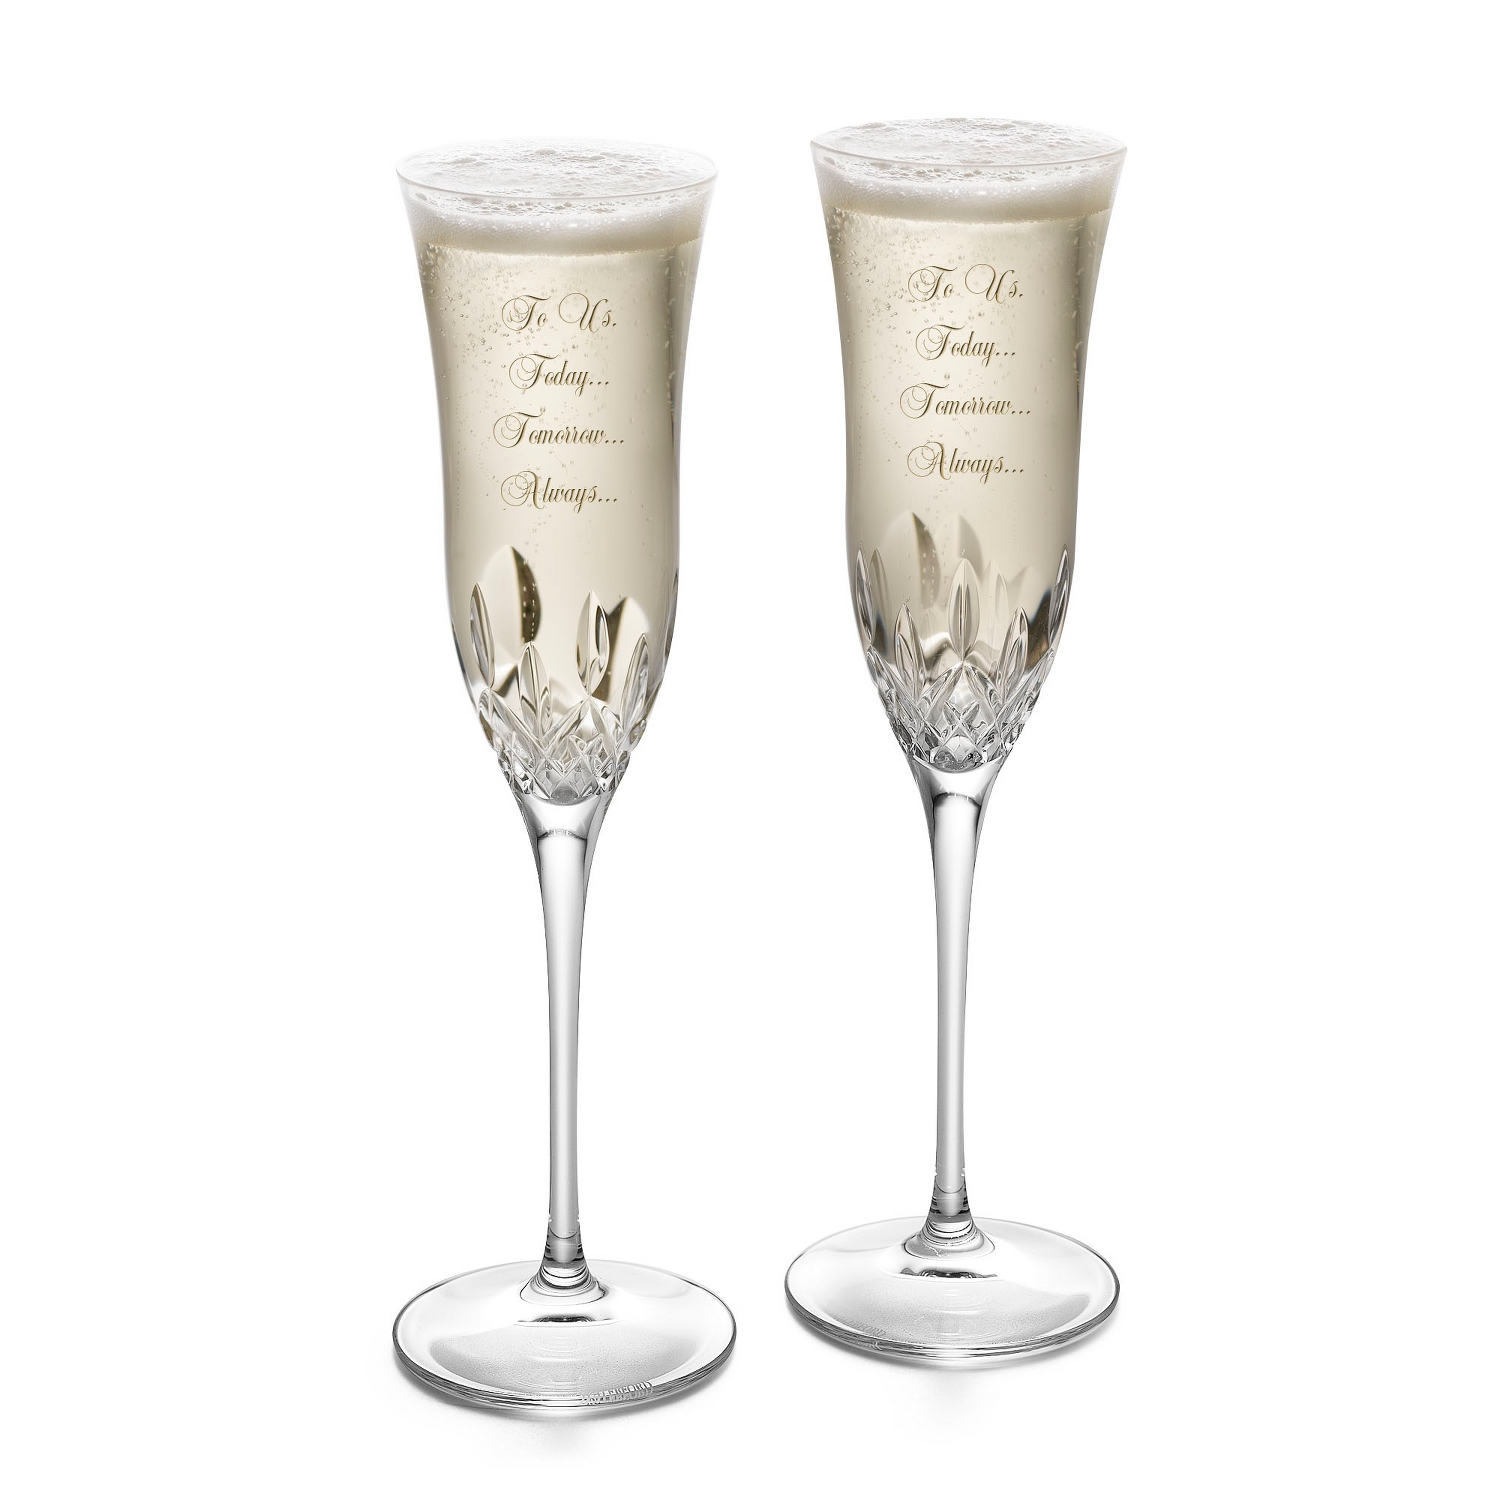 waterford lismore essence champagne flutes. Black Bedroom Furniture Sets. Home Design Ideas